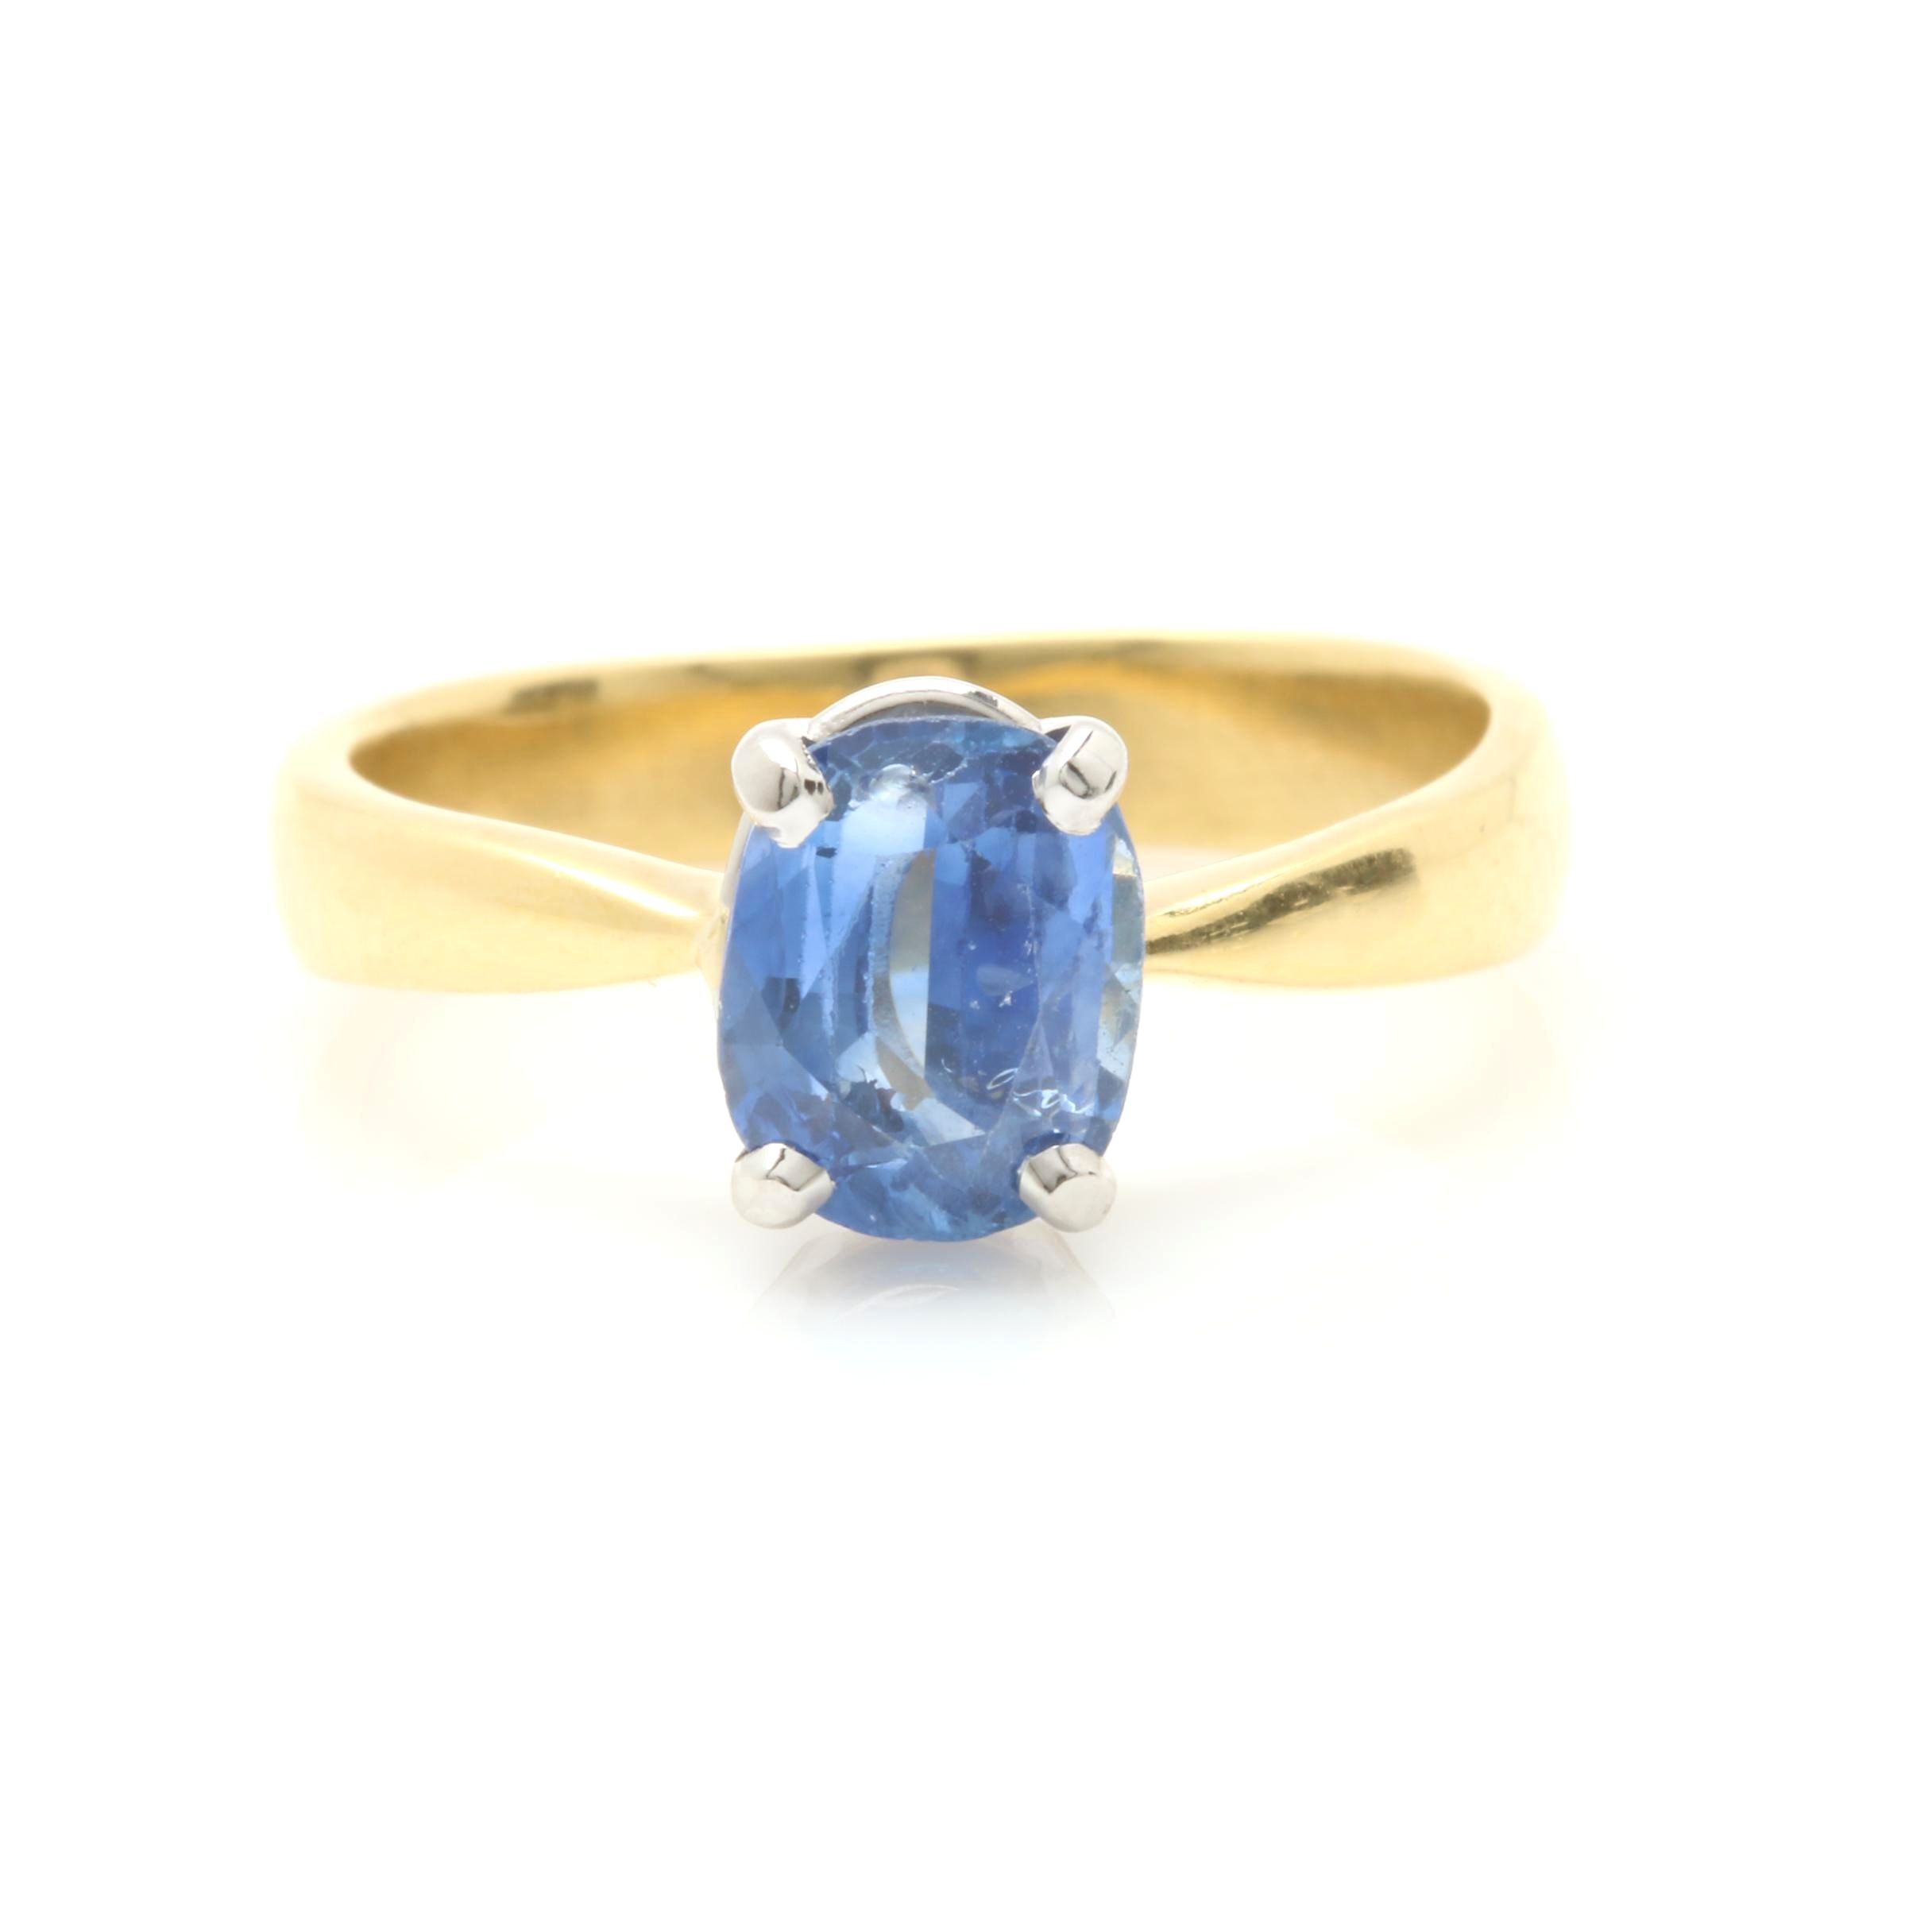 18K Yellow Gold 1.37 CT Blue Sapphire Ring